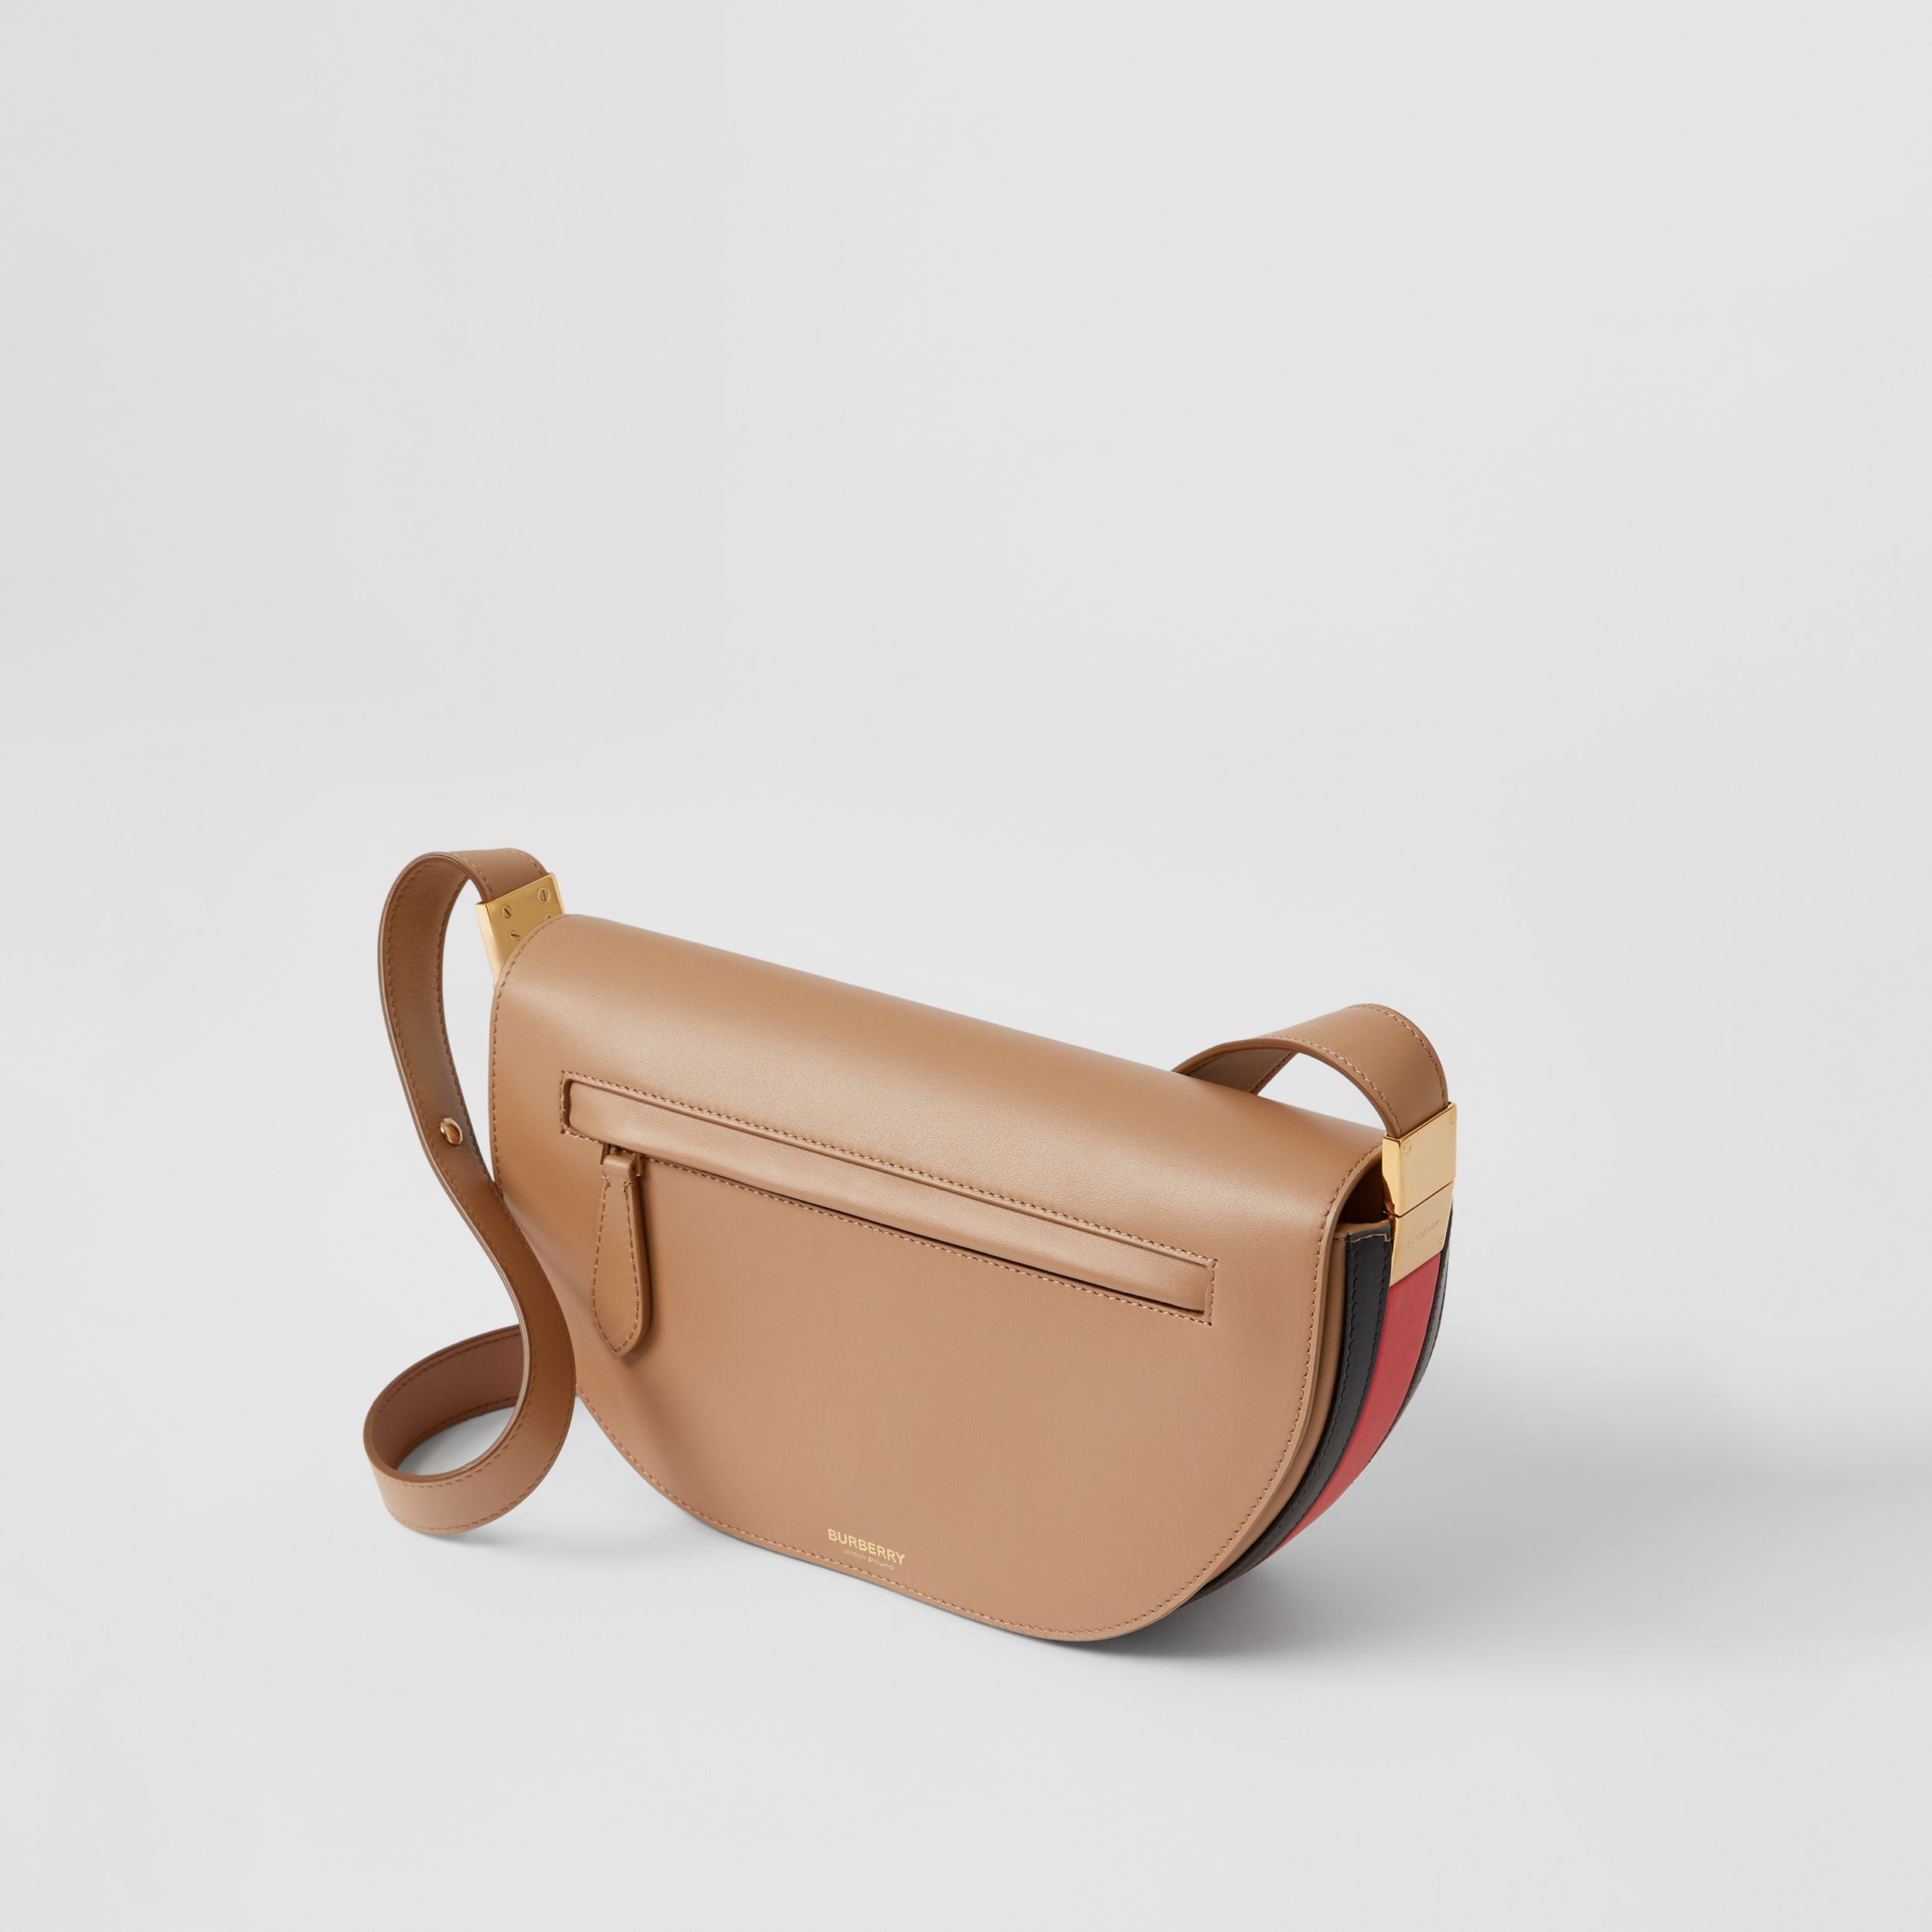 Small Leather Olympia Bag in Camel - Women | Burberry - 4